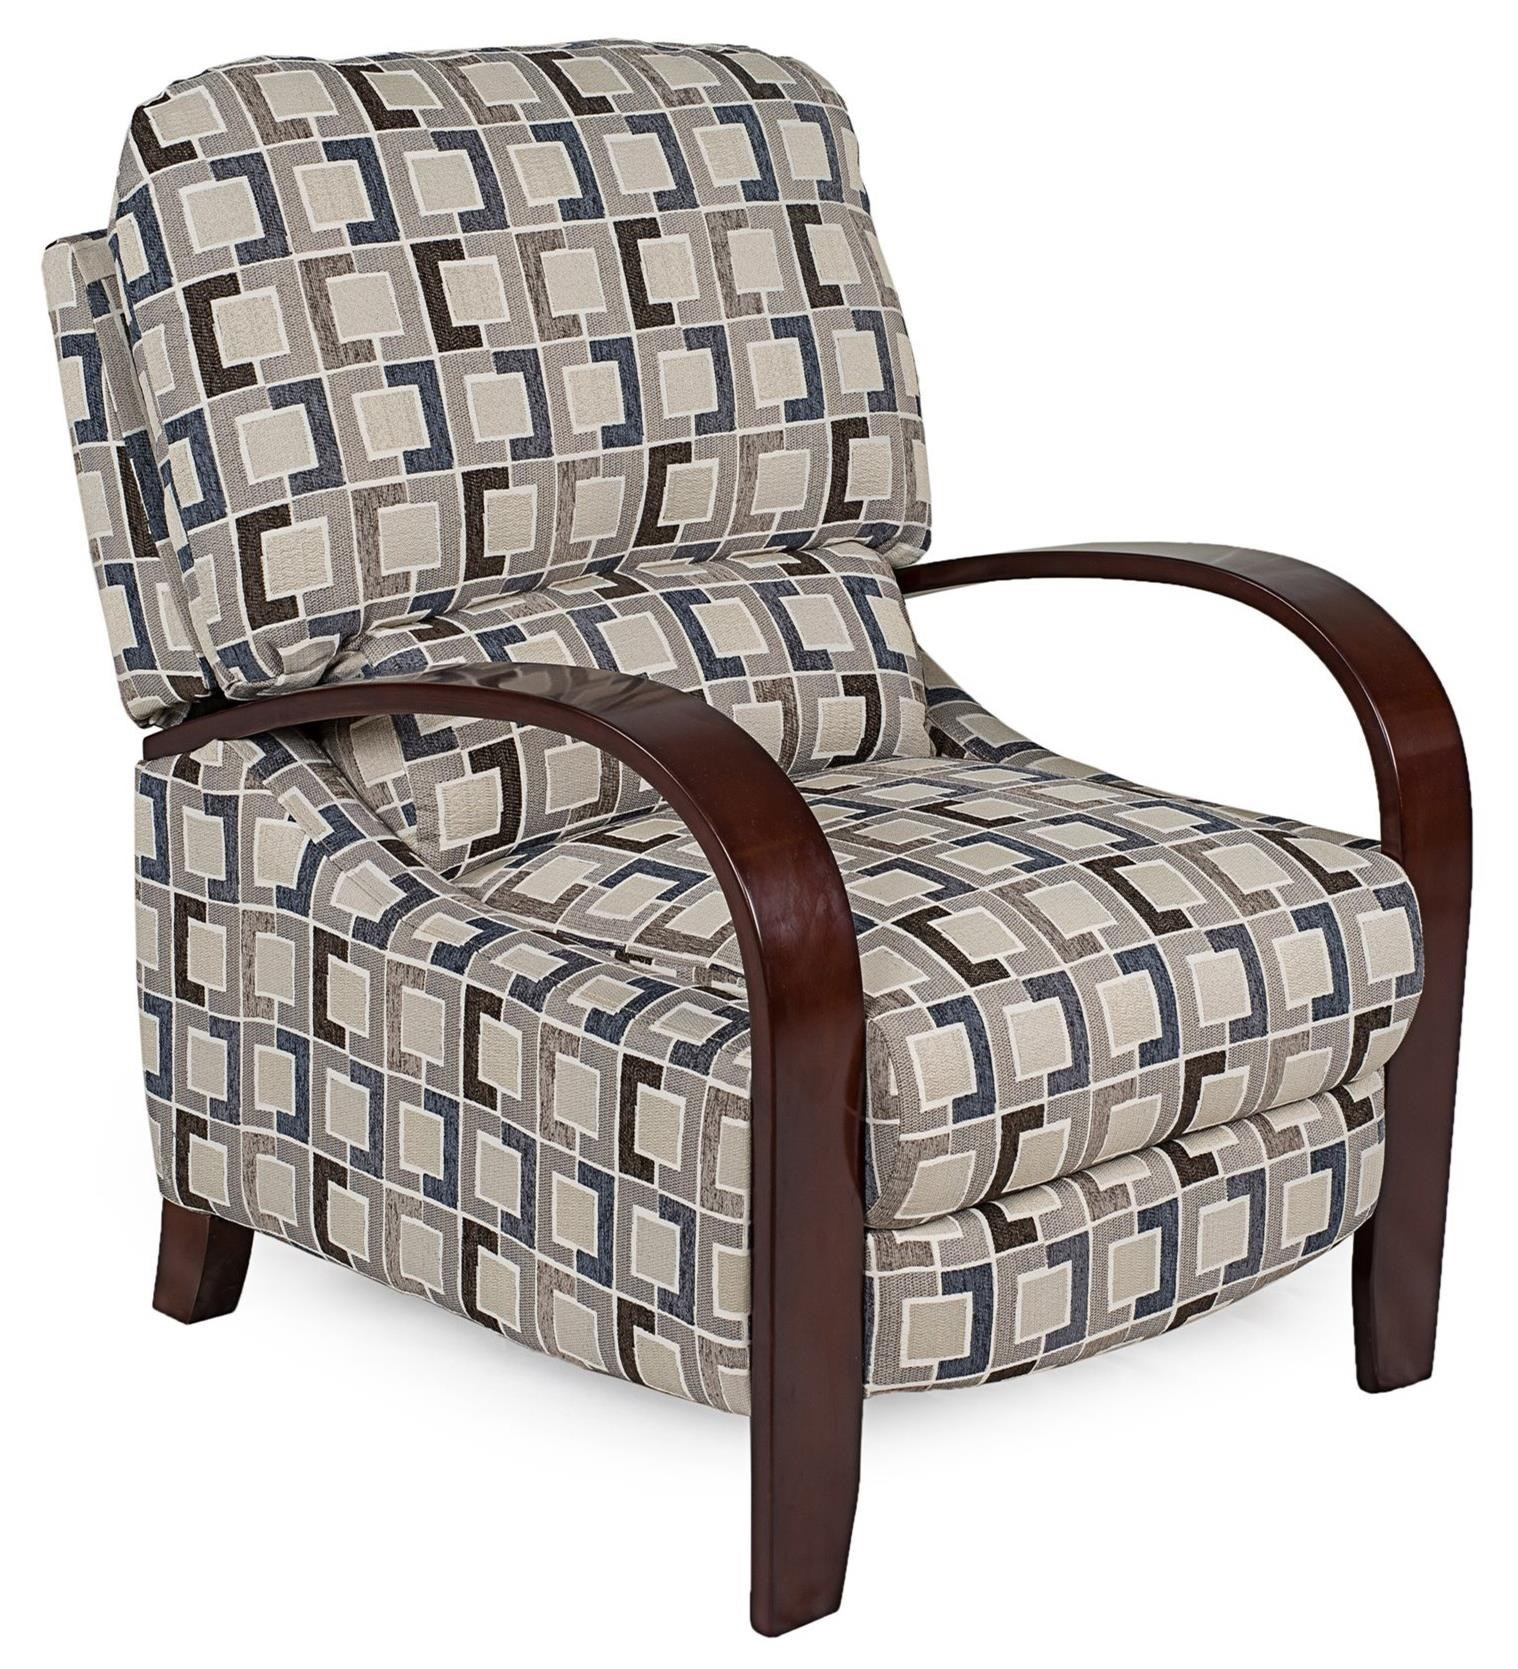 synergy recliner chair white covers home furnishings 997 86 contemporary with push 997recliner